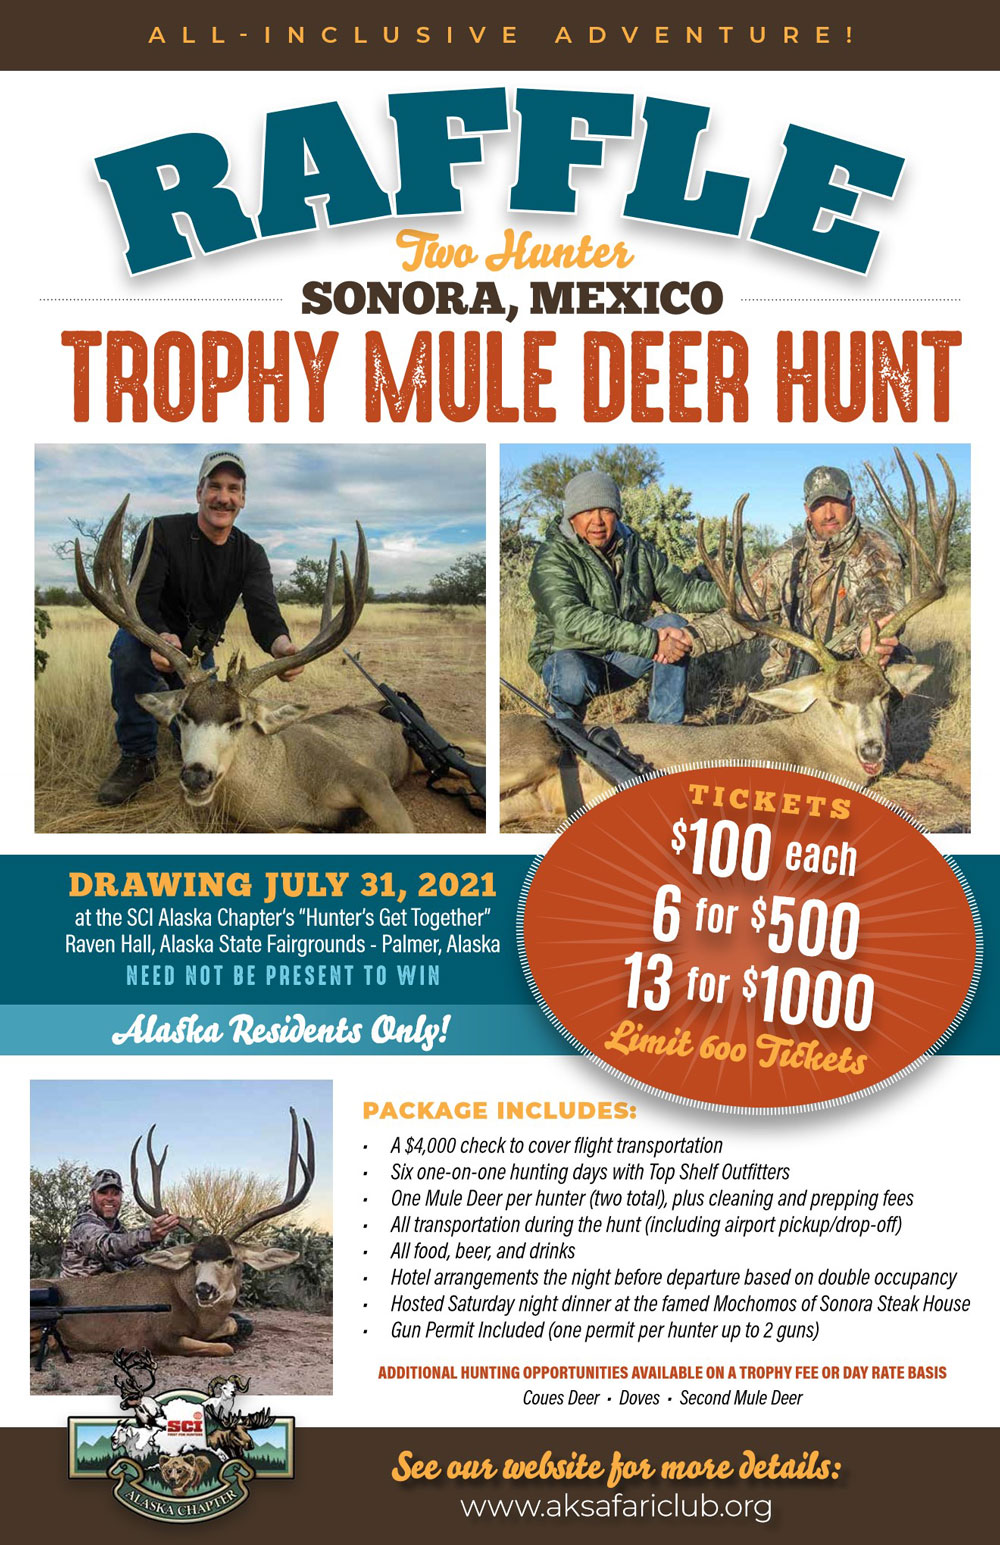 Sonora Mexico Trophy Mule Deer Hunt Raffle